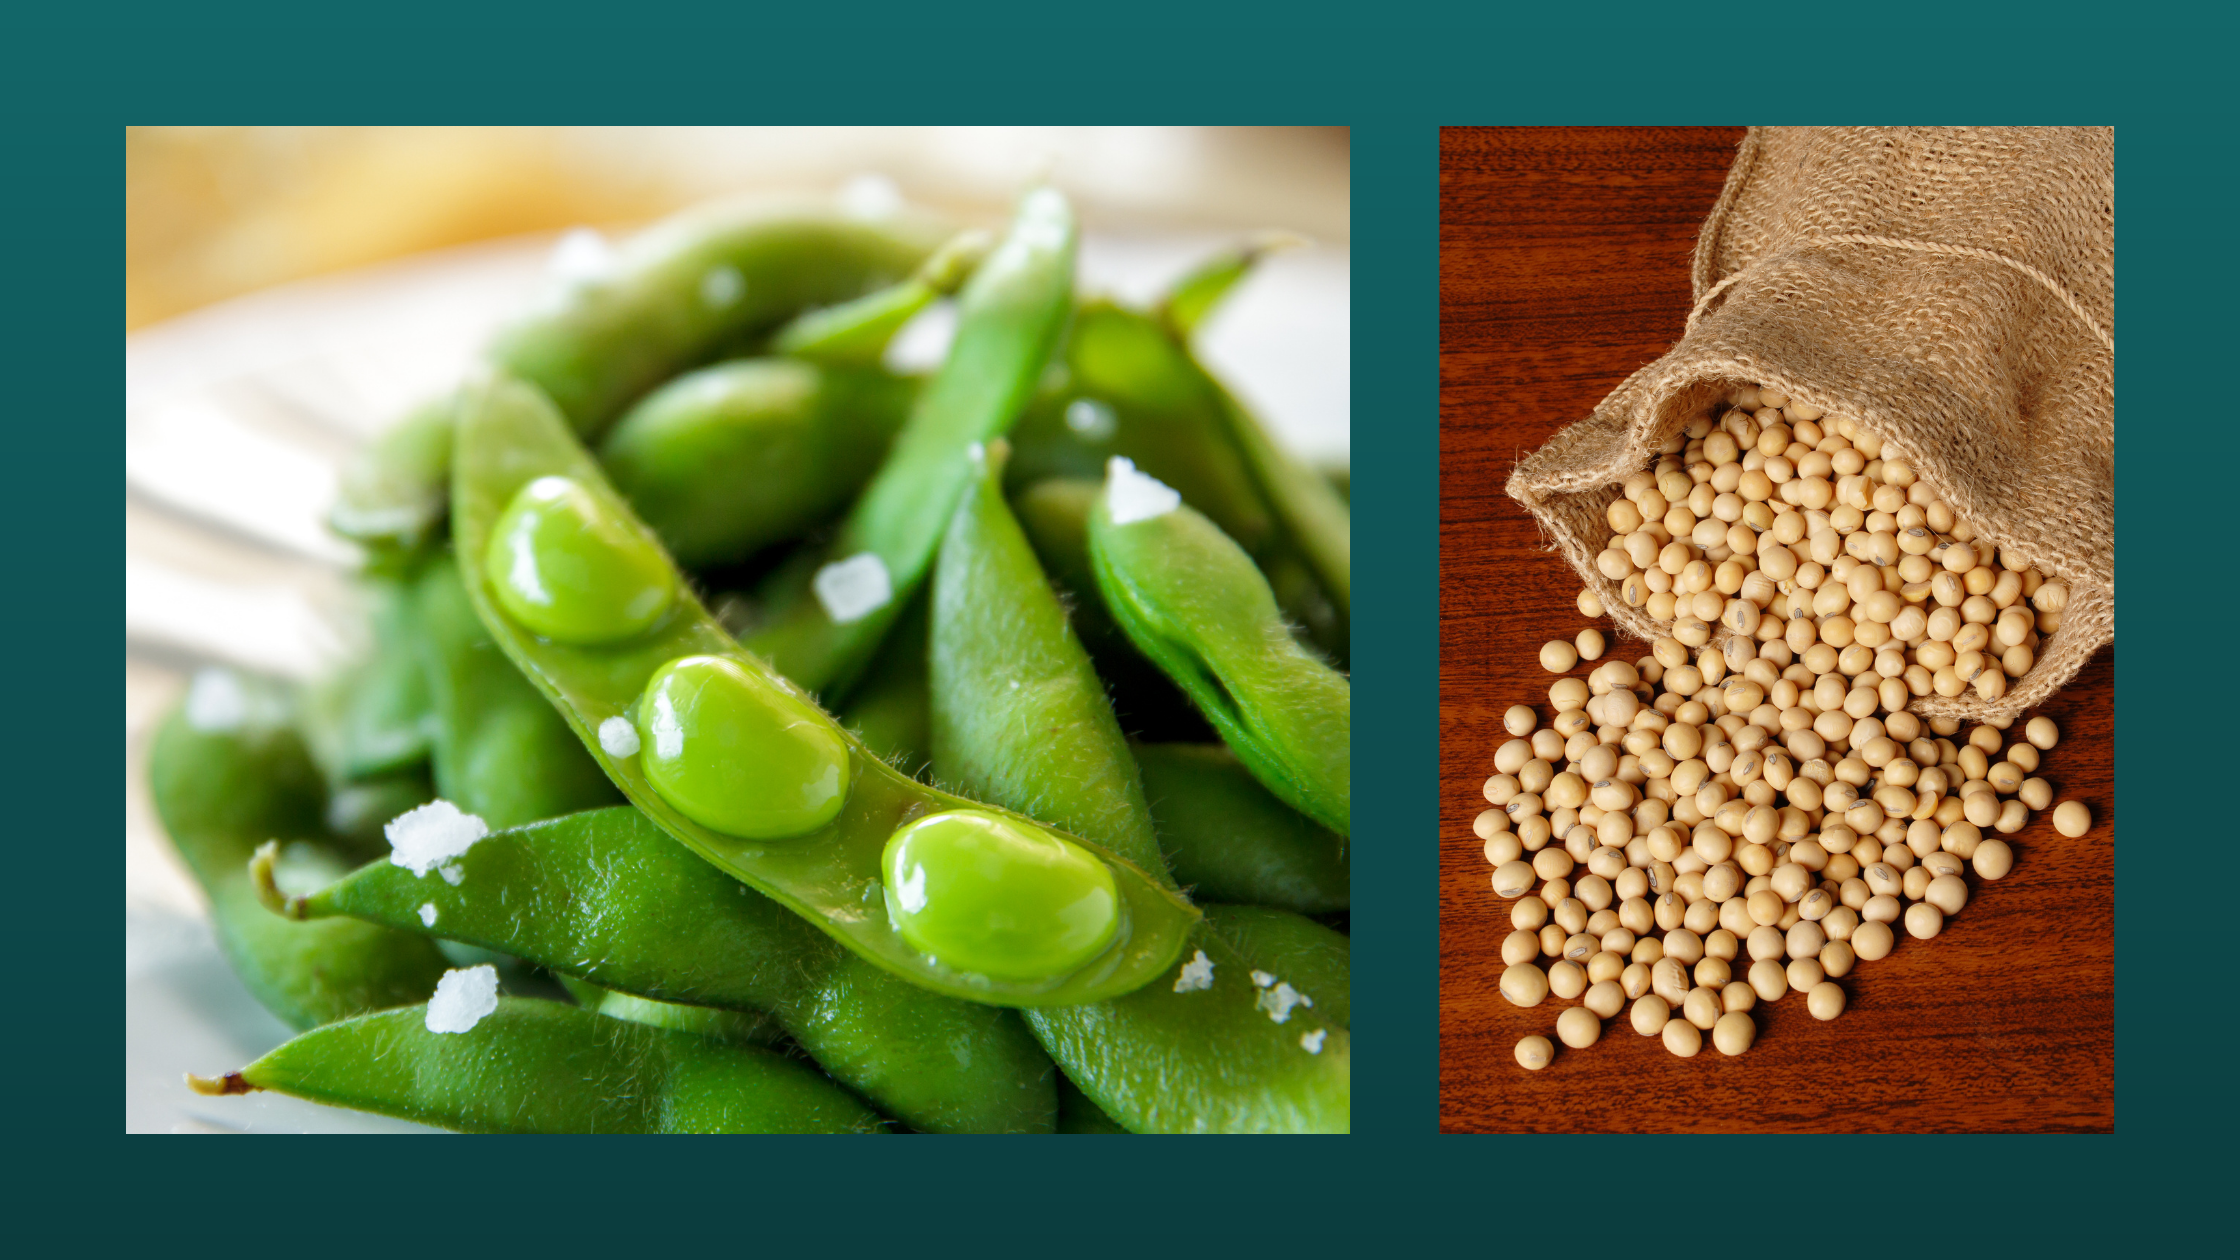 fresh soy beans and dried soy beans